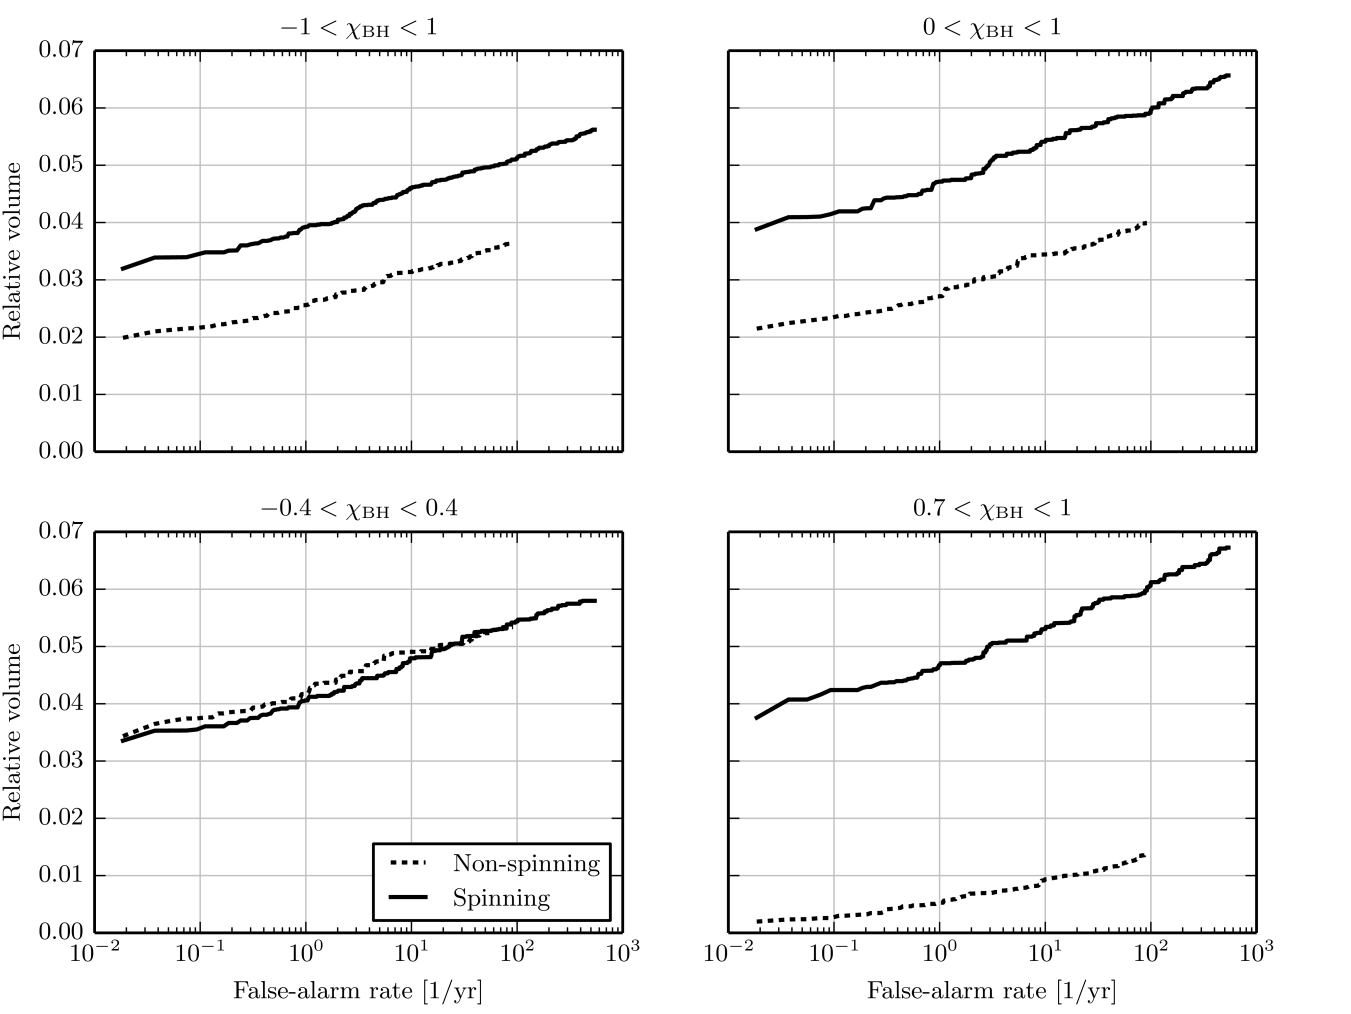 curves for the spinning and non-spinning searches, comparing the relative sensitive volume (or number of detections) at fixed false-alarm rate. The four panels assume NS-BH systems with different limits on a uniform distribution of